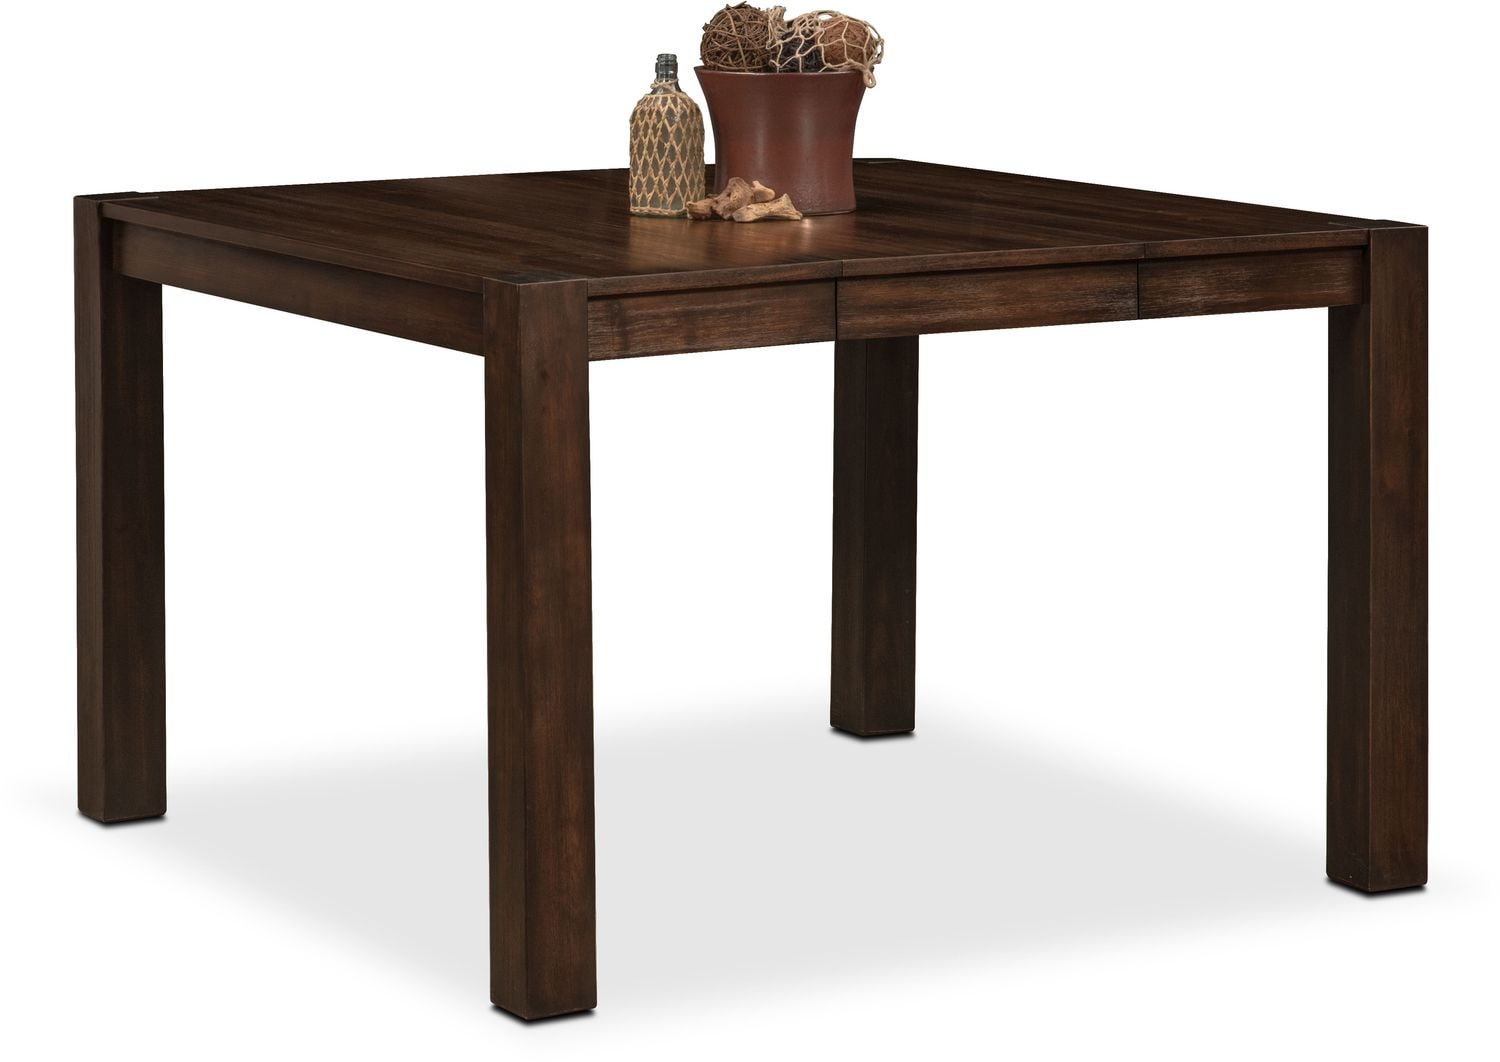 Tribeca Counter-Height Table - Tobacco